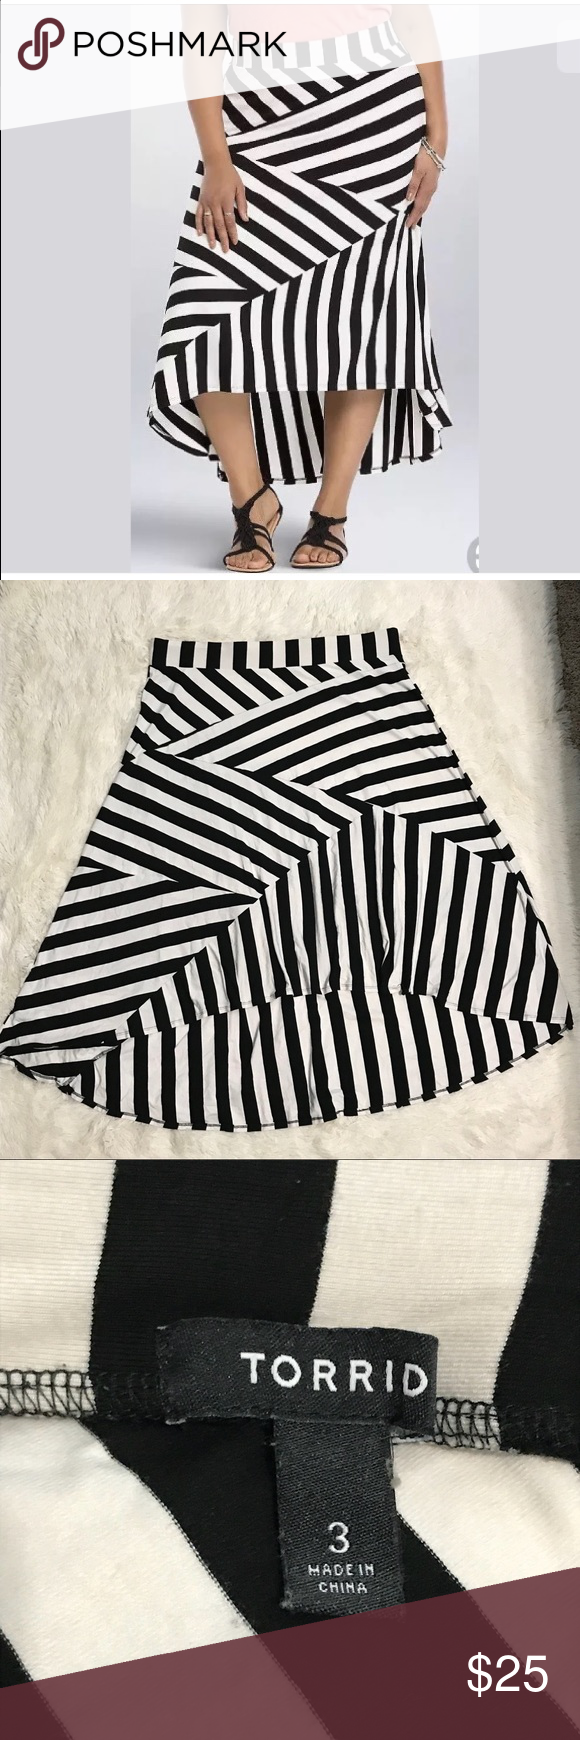 b52d62fcfb Torrid Maxi Skirt 3 3XL High Low Stripes Black TORRID High-Low Maxi Skirt.  • Size: 3 (3XL) • Very good used condition. No holes, flaws, or stains. •  White ...